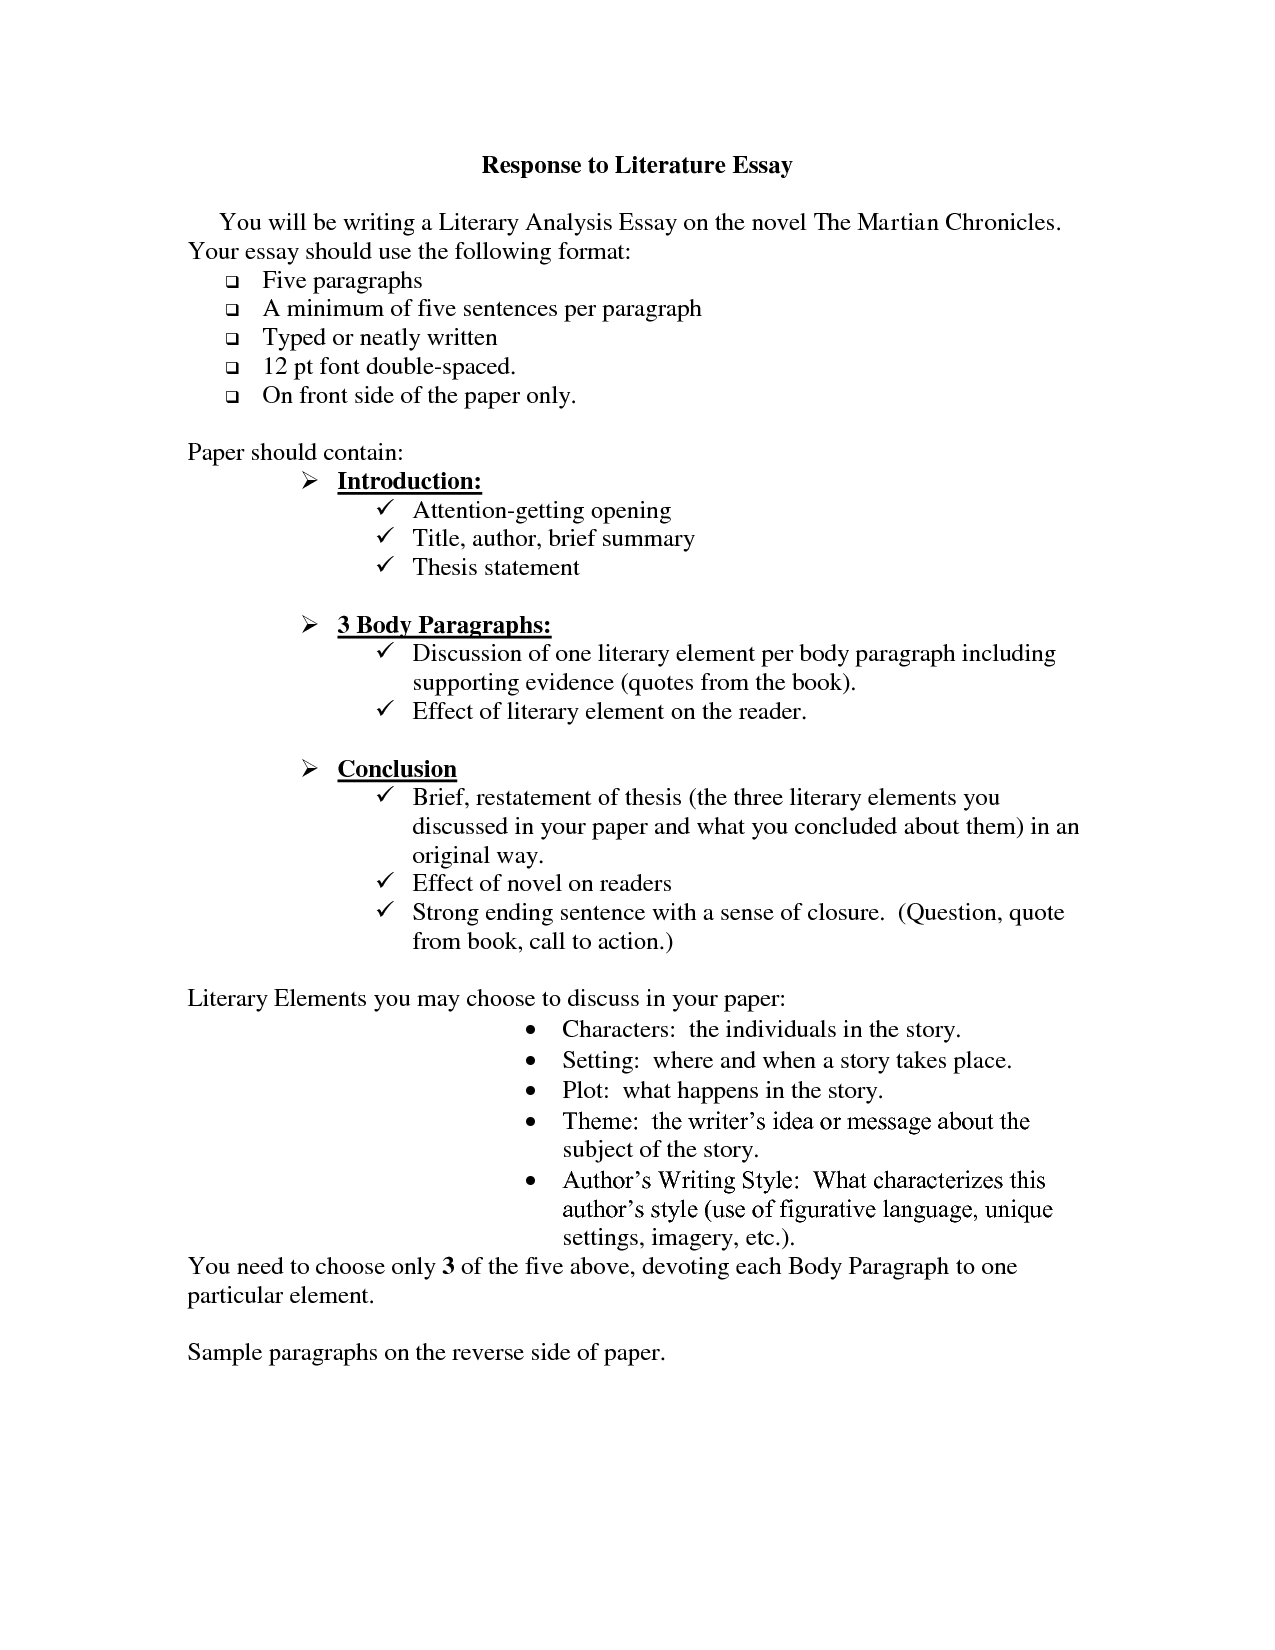 027 Write Critical Analysis Essay Response Literature Character Sketch Macbeth Introduction College Poetry Example Rhetorical Process Examples Analytical Research Paper Literary Paragraph Amazing Reader Assignment On The Story Of An Hour Full